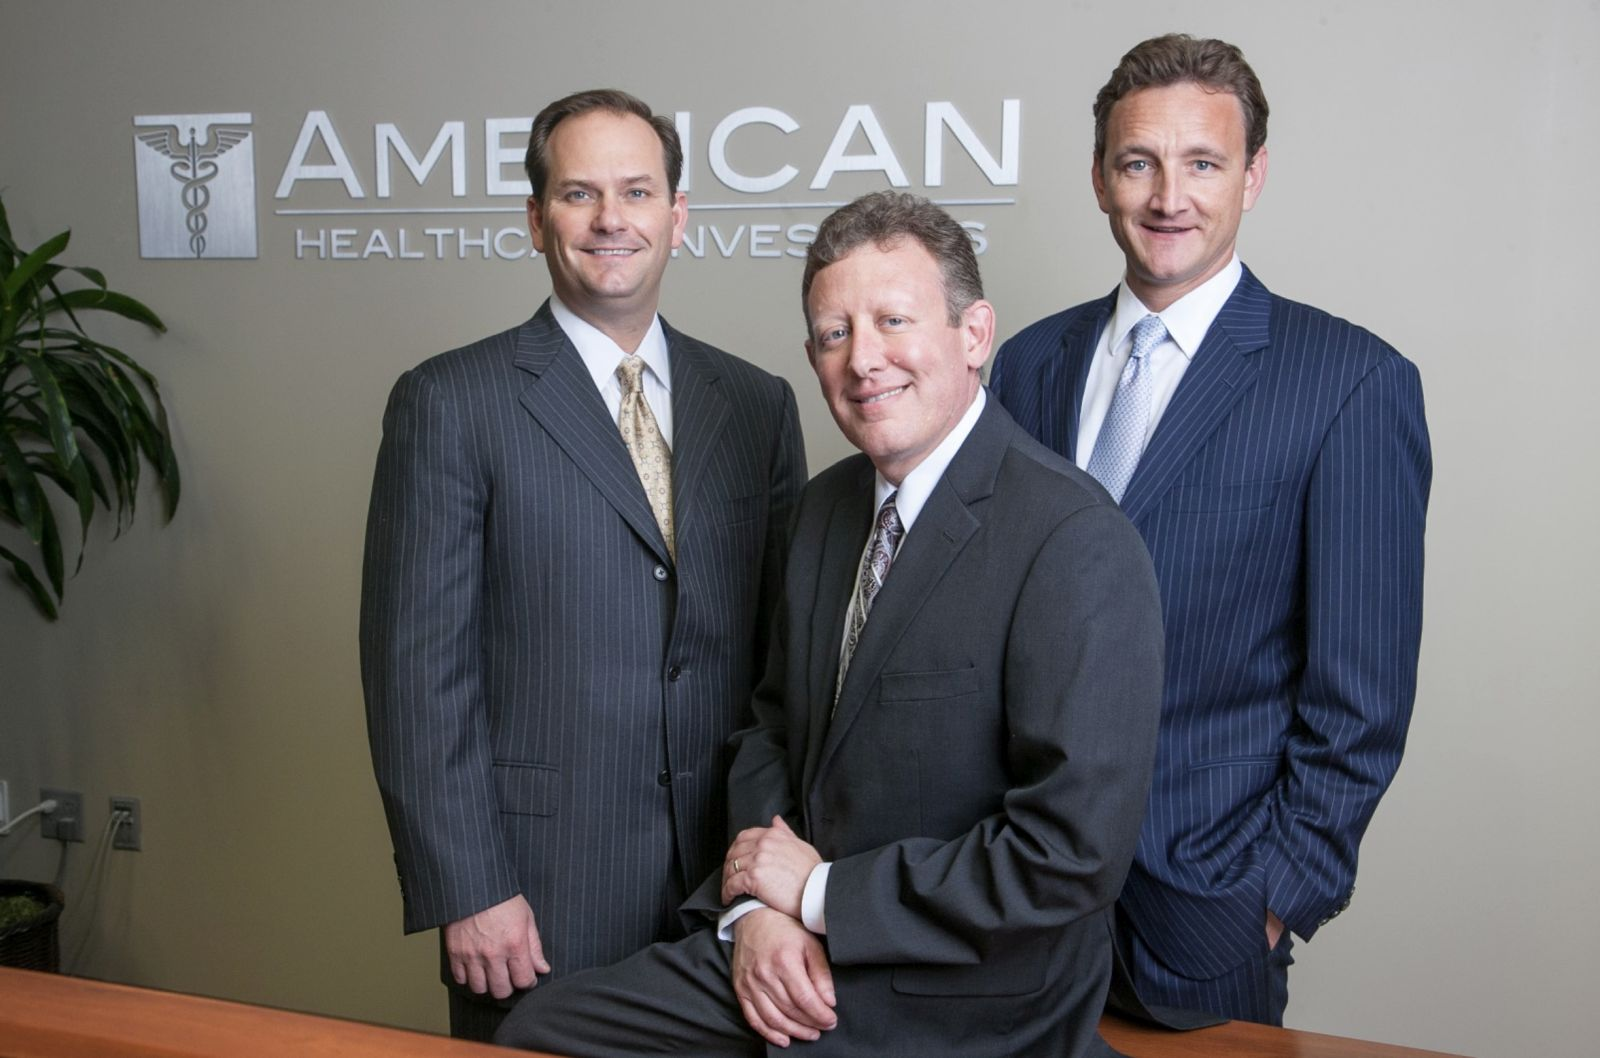 Corporate Photography - Group Shots - 008